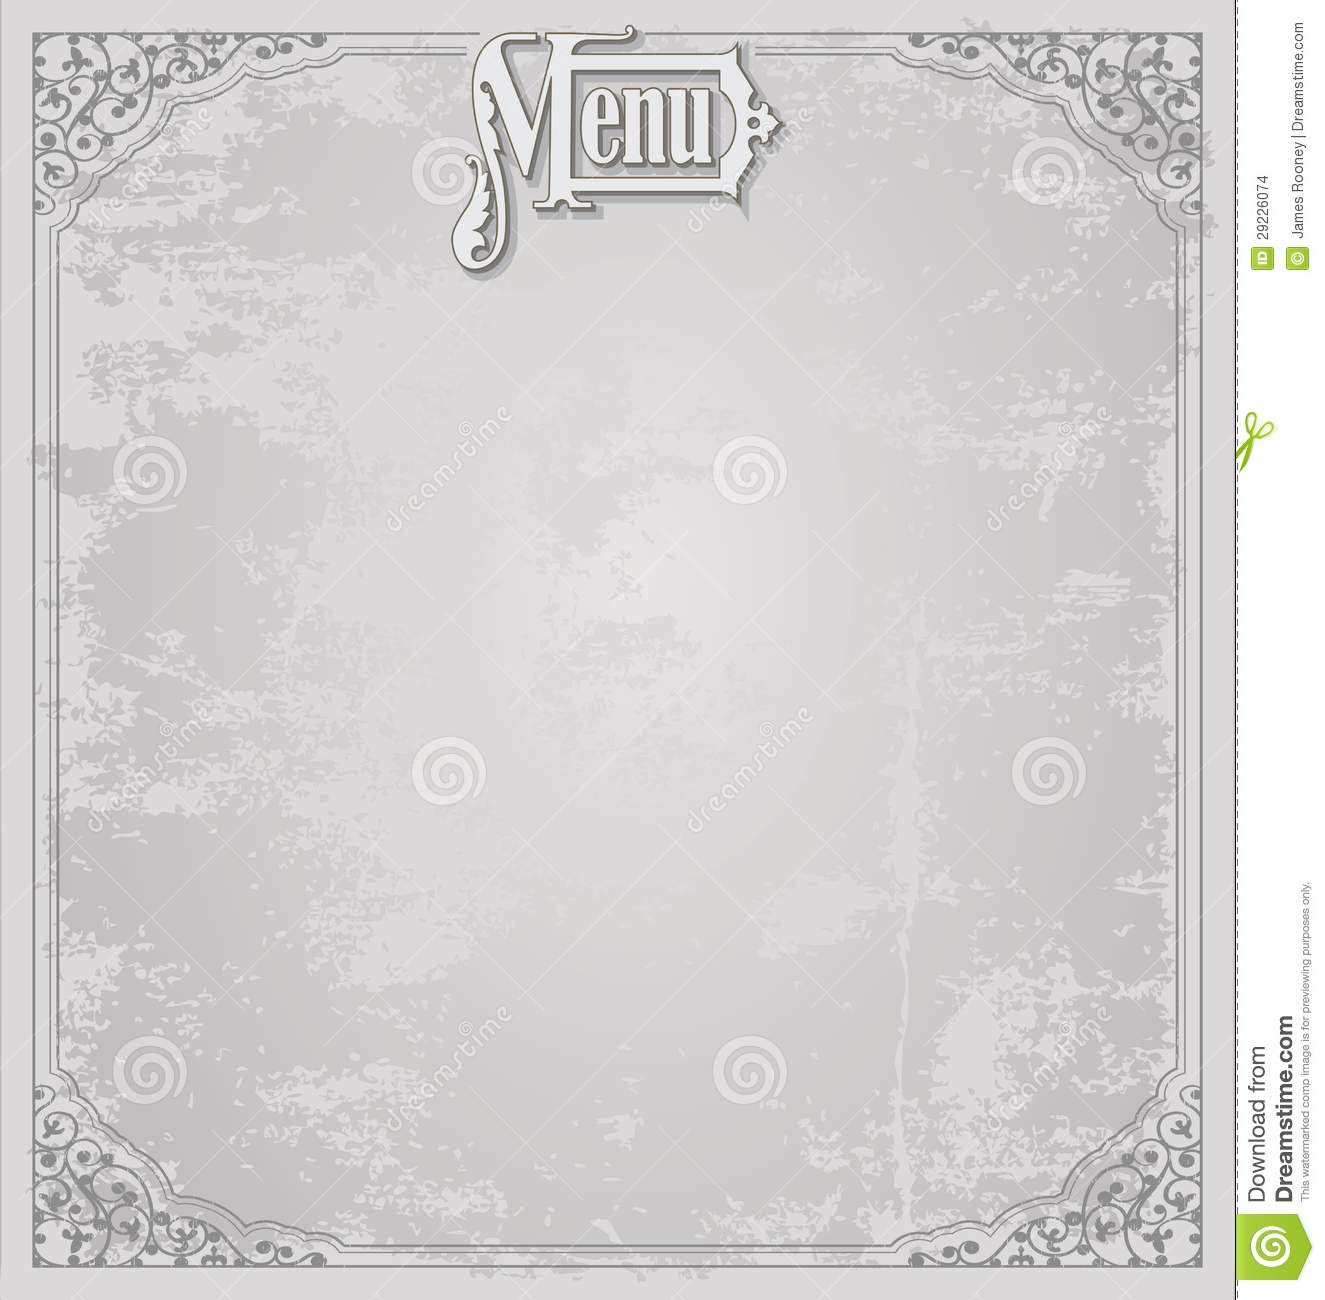 menu design template stock illustration. illustration of elegance